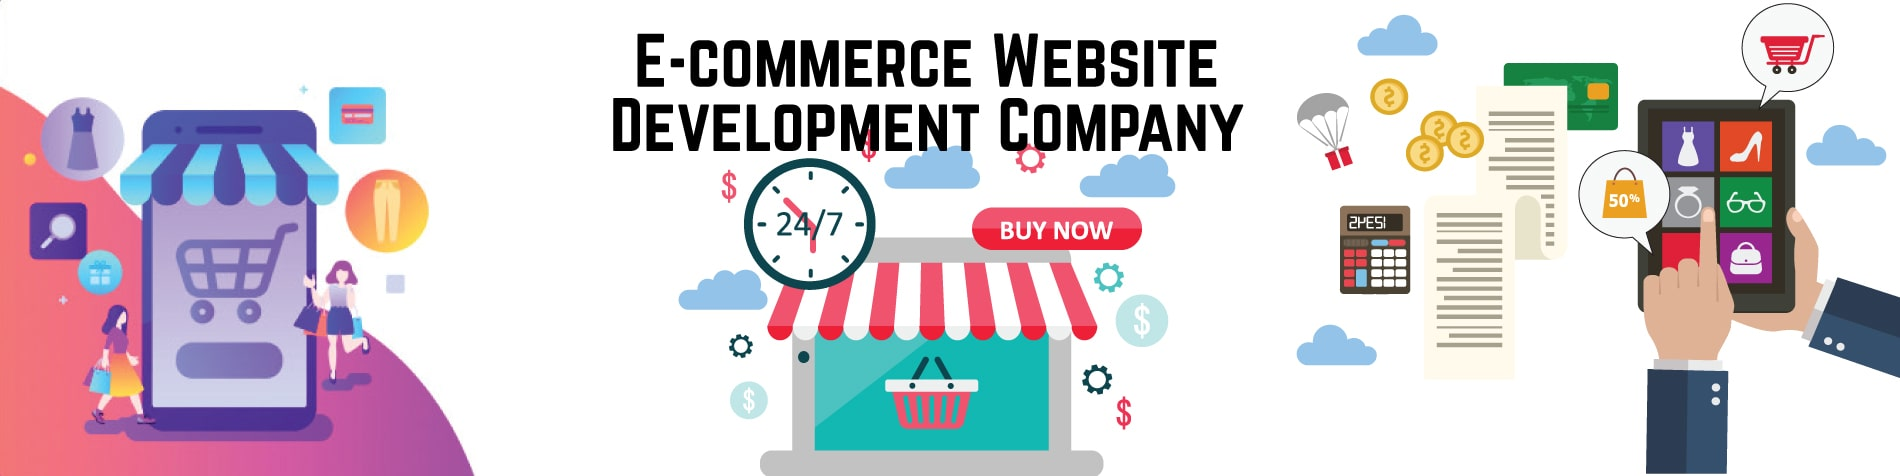 custom ecommerce website development company in Noida